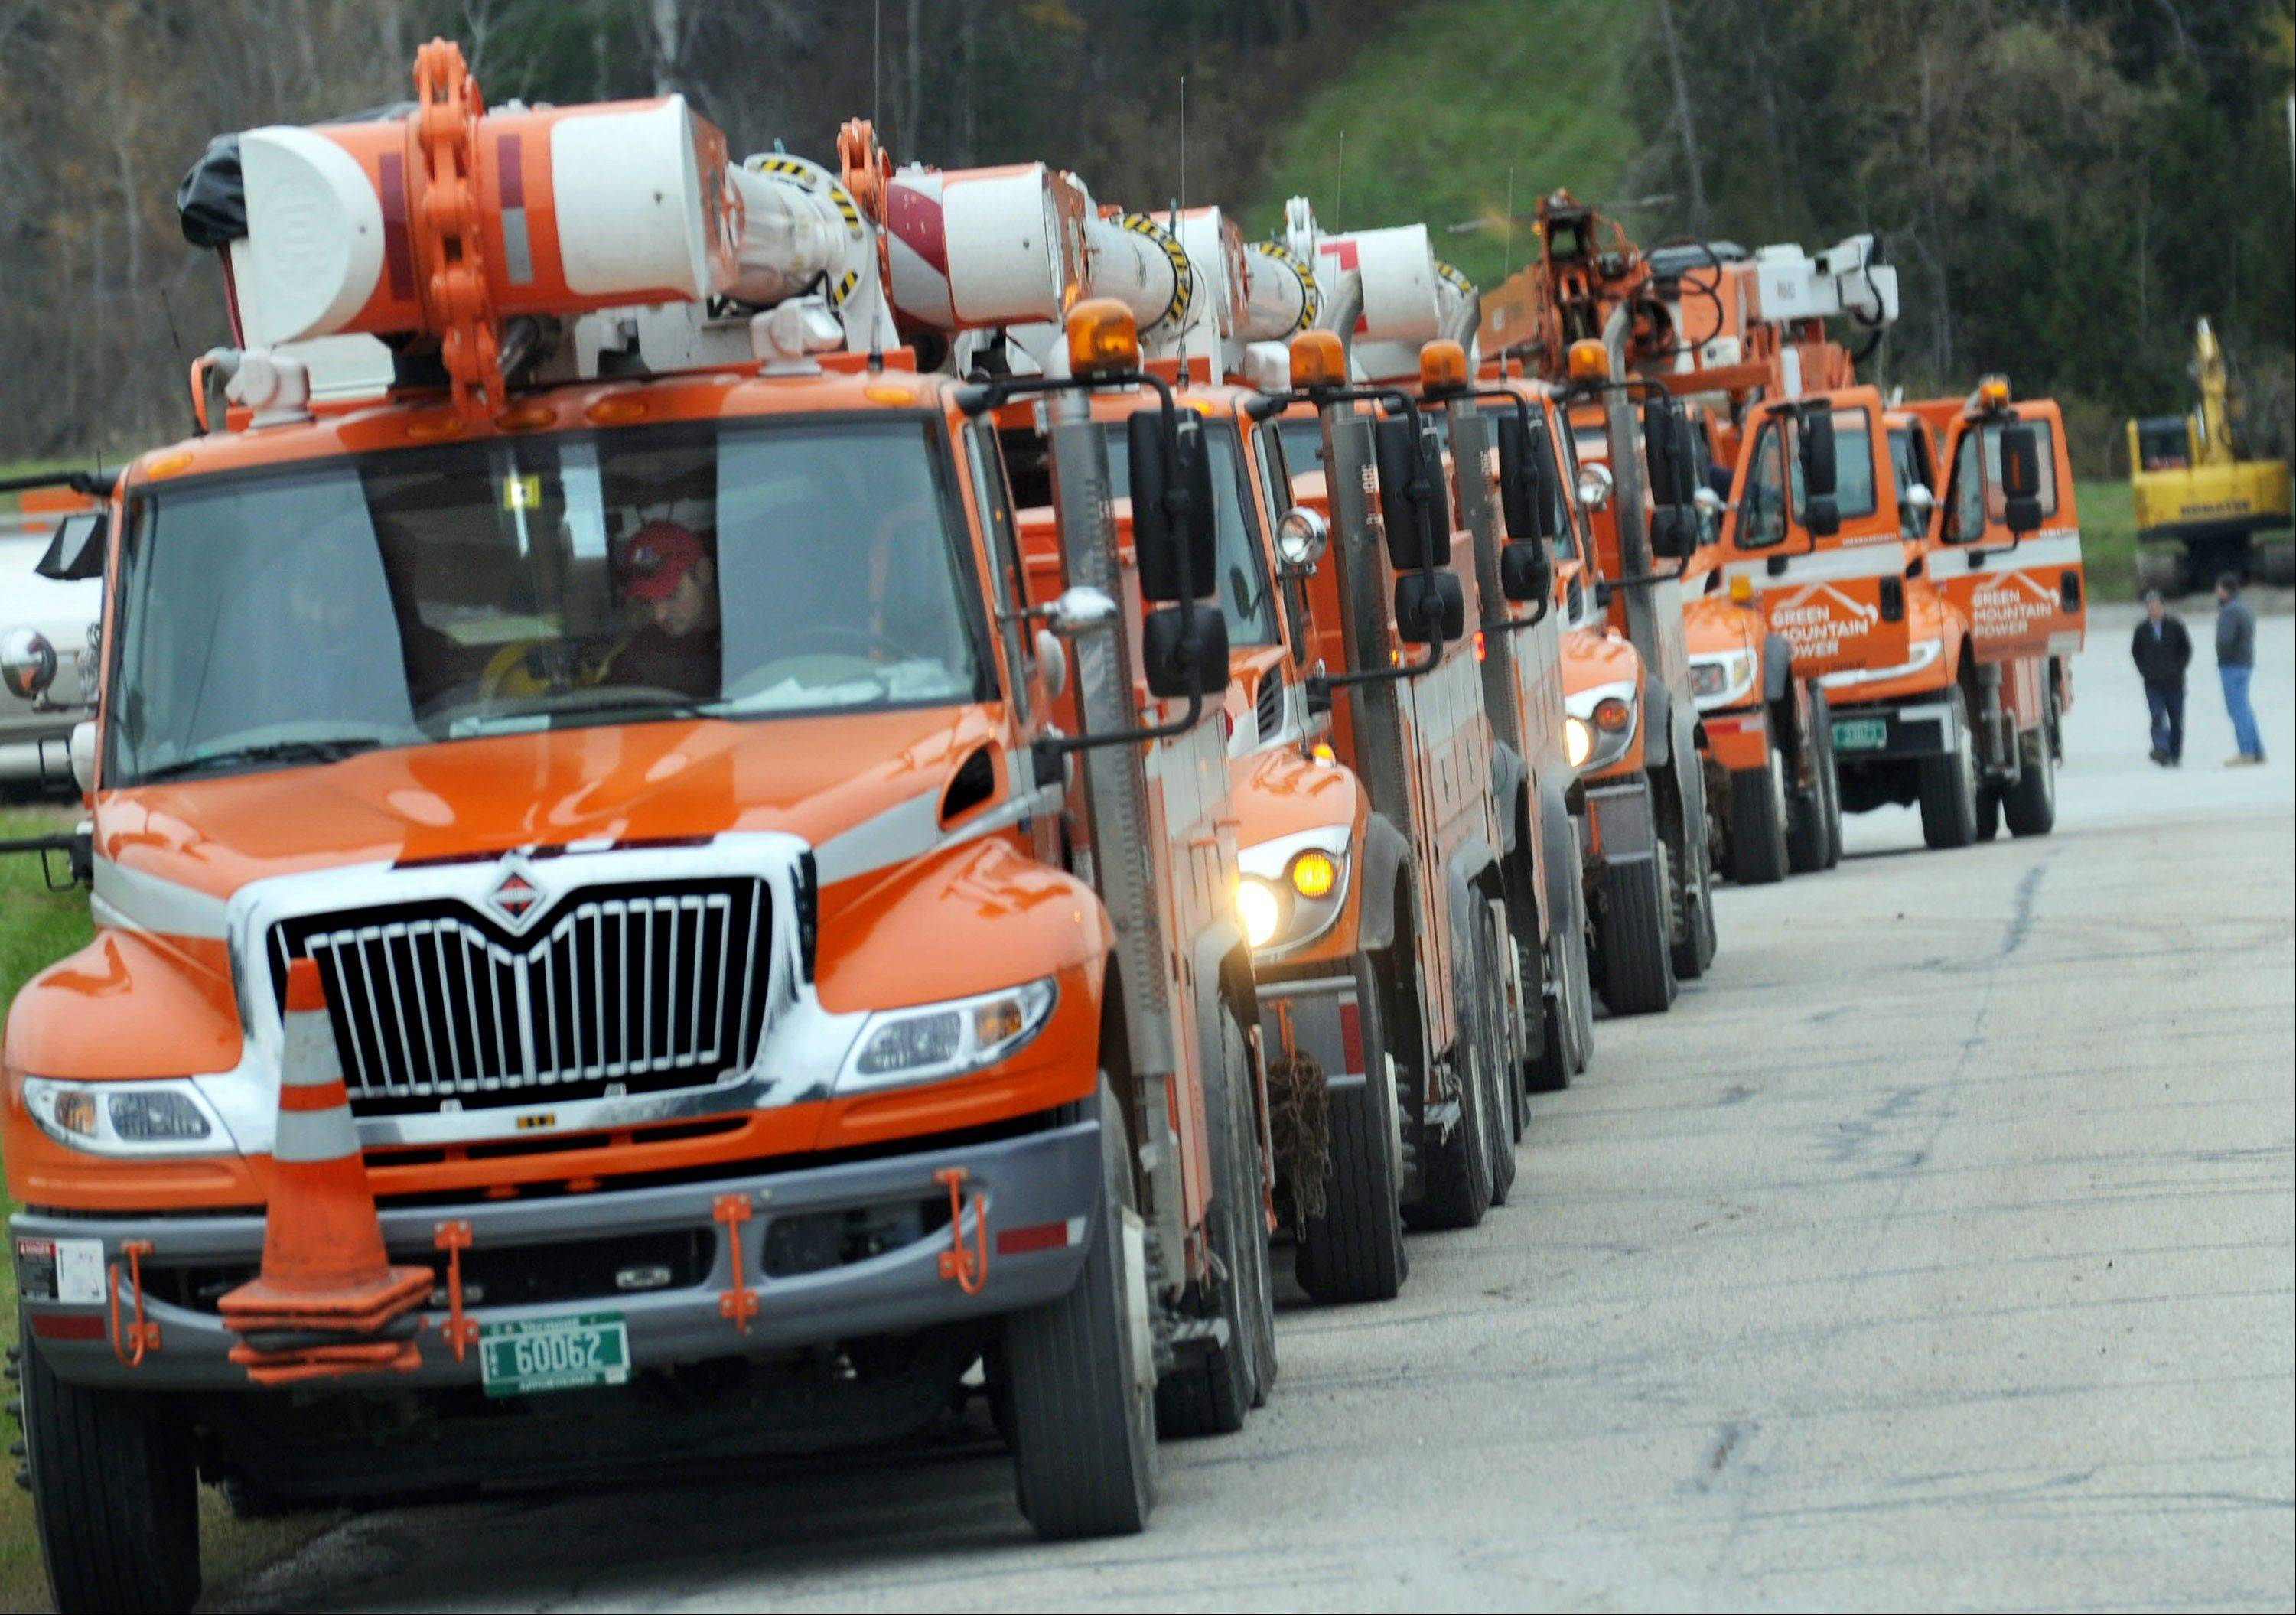 Green Mountain Power trucks line up Thursday to leave for Connecticut, in Rutland, Vt., to help with recovery efforts due to the damage caused by Superstorm Sandy. After Tropical Storm Irene caused widespread flooding in Vermont in 2011, volunteers and money poured in from around the country to help with the recovery. Now Vermont is returning the favor.